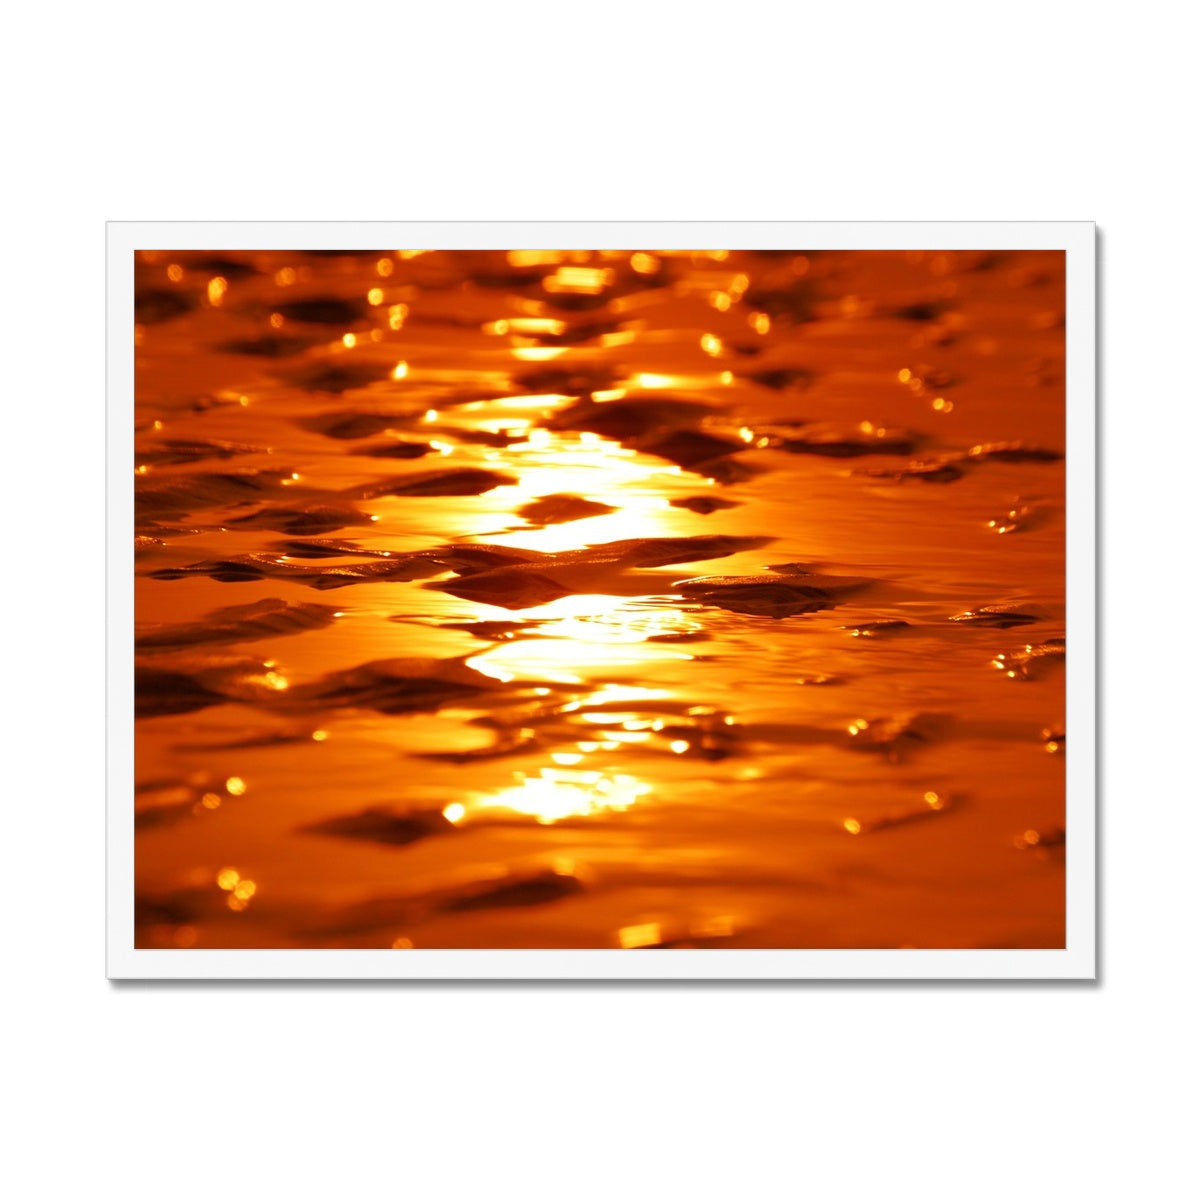 Golden Sands - Framed Print